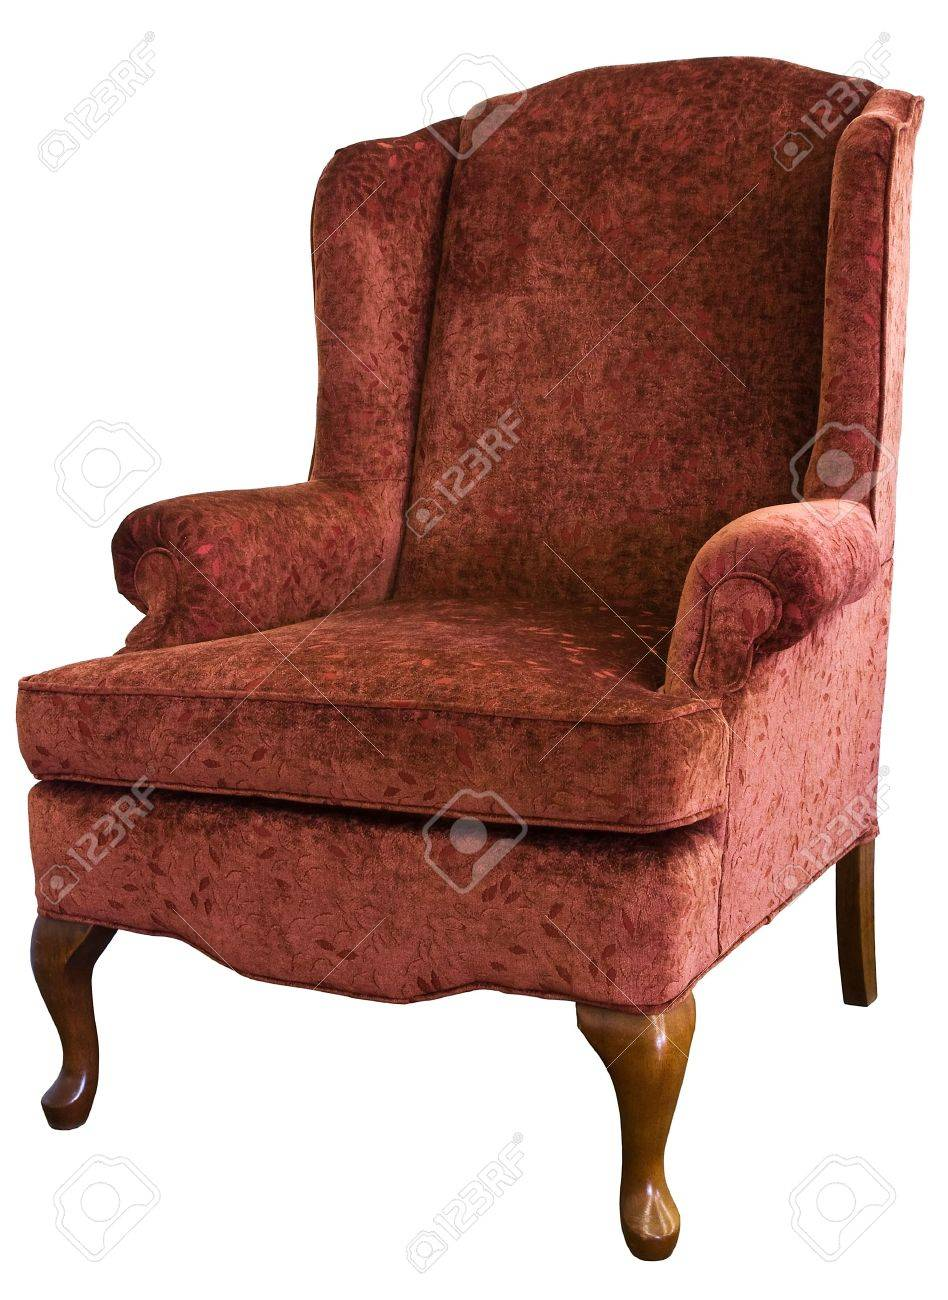 queen anne wing chair in velvet floral fabric stock photo